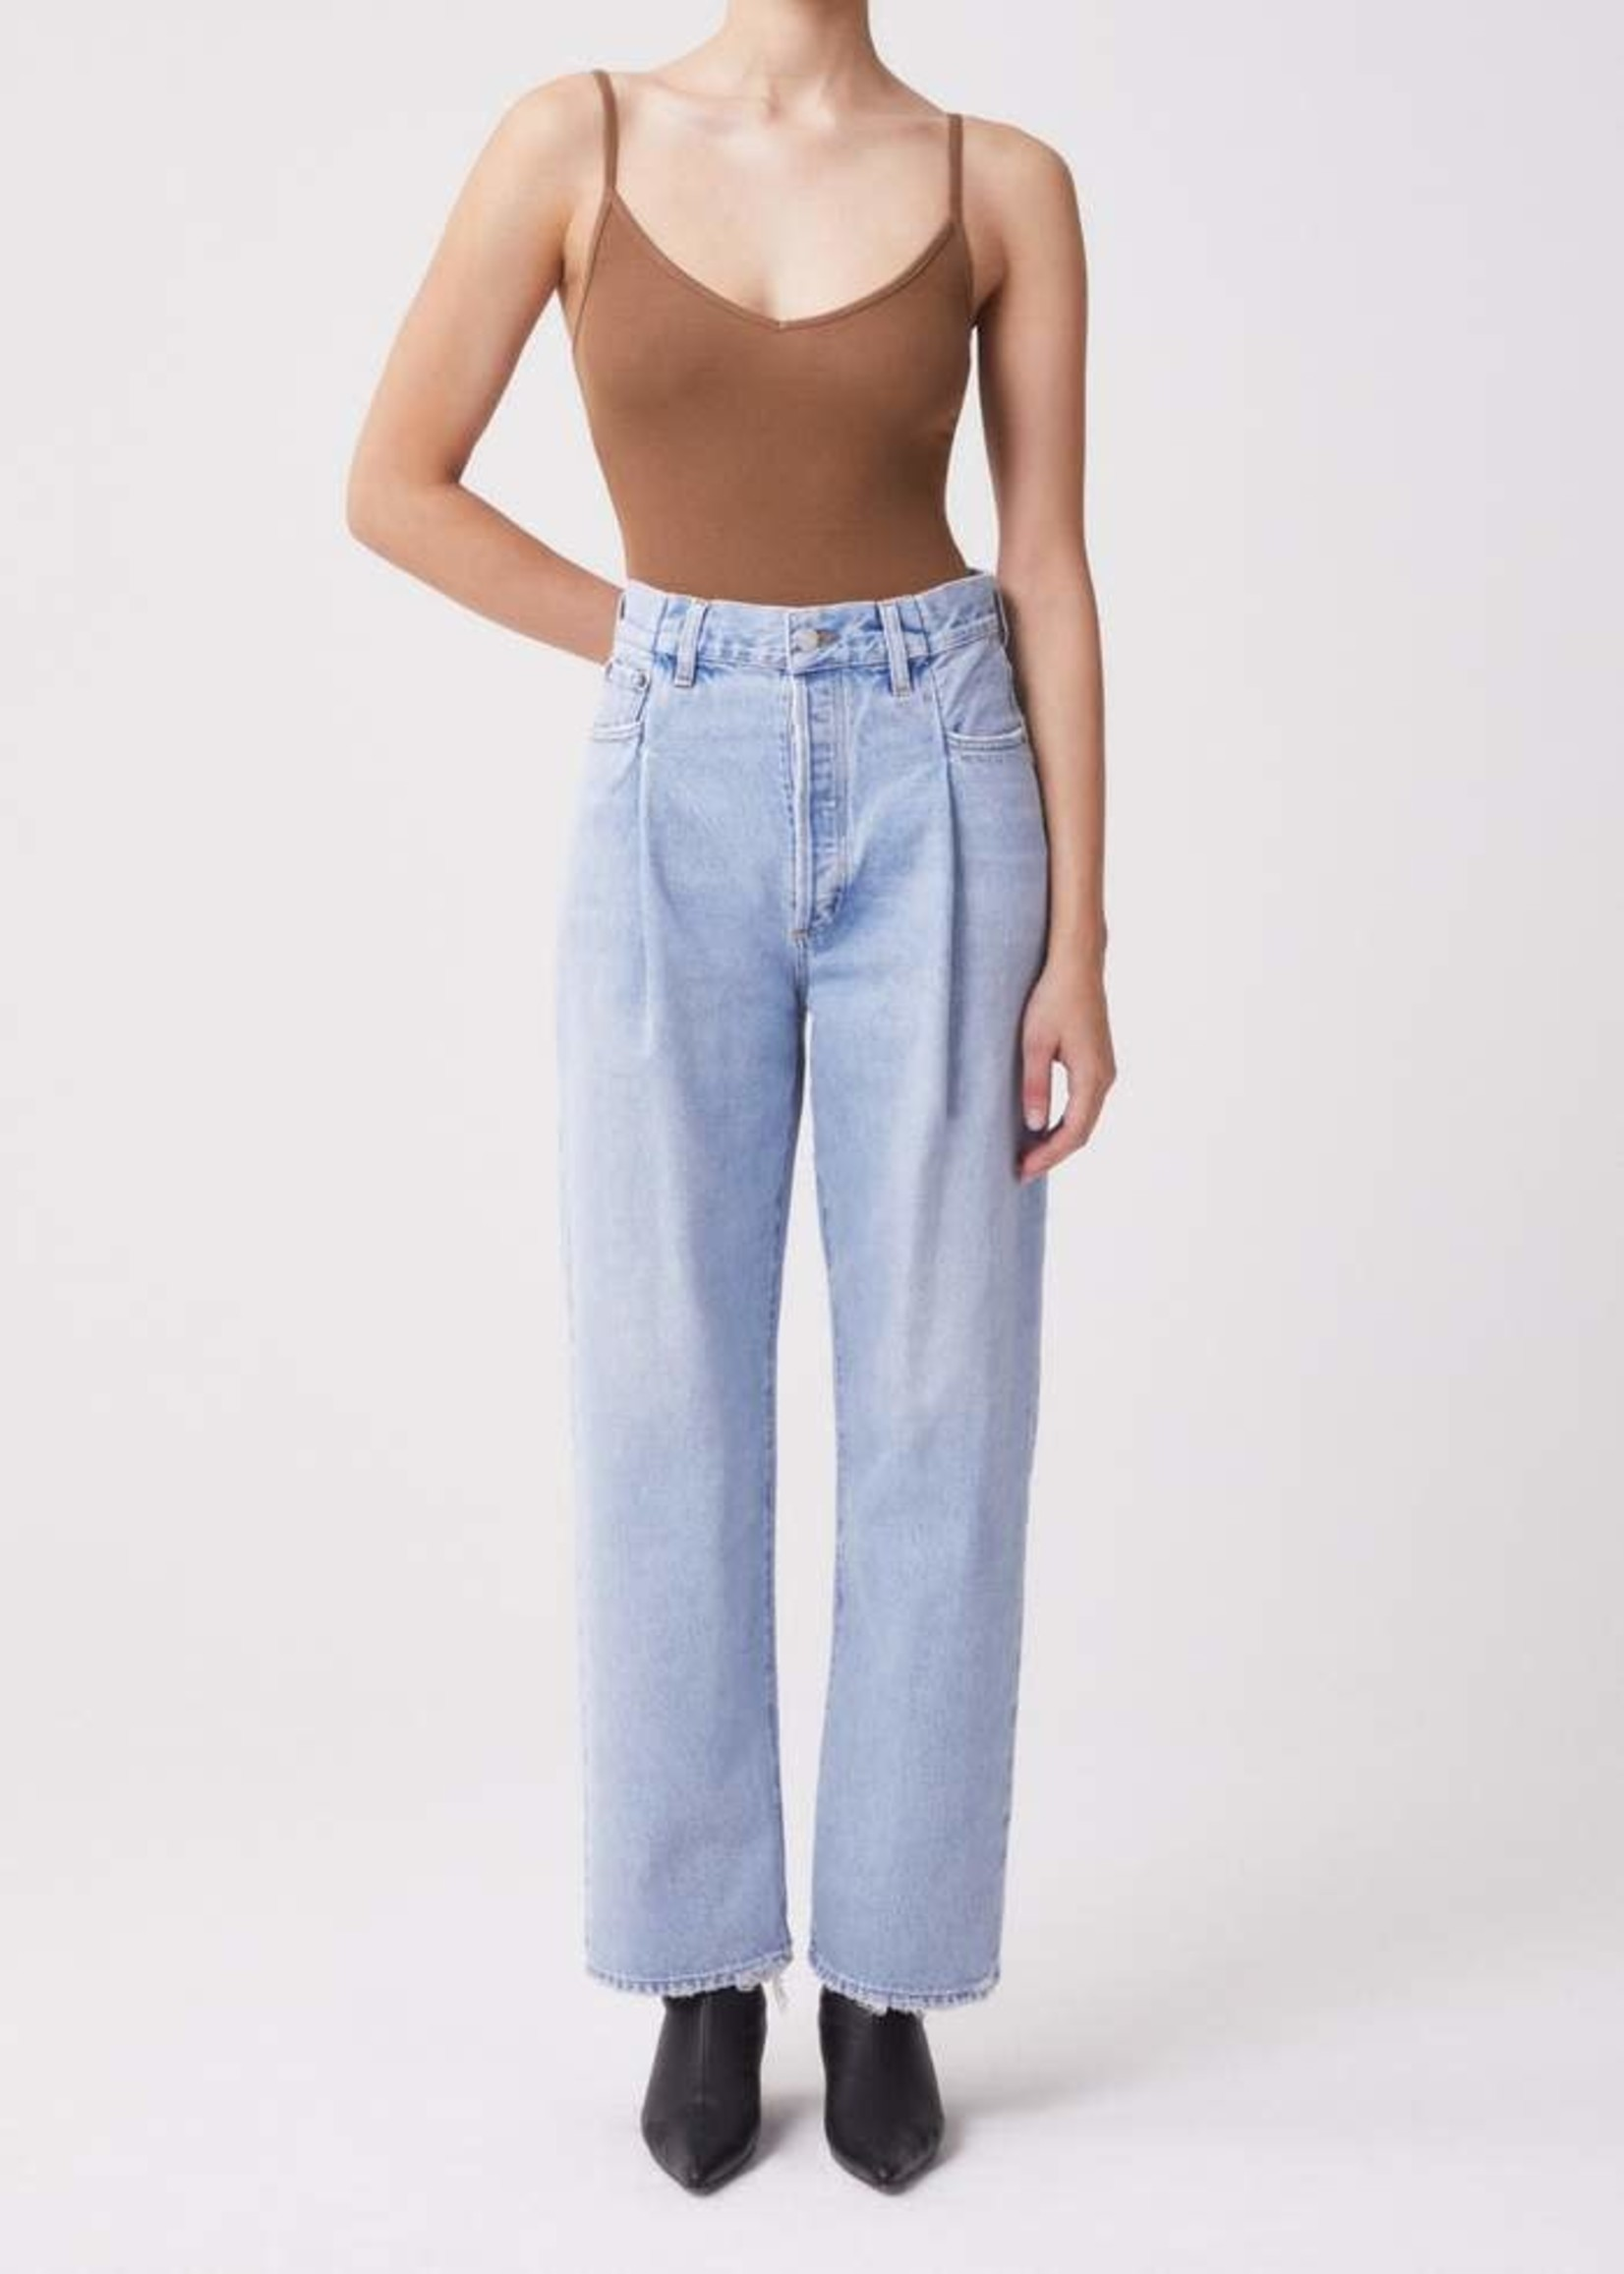 AGOLDE Fold Waistband High Rise Tapered Jean in Sideline